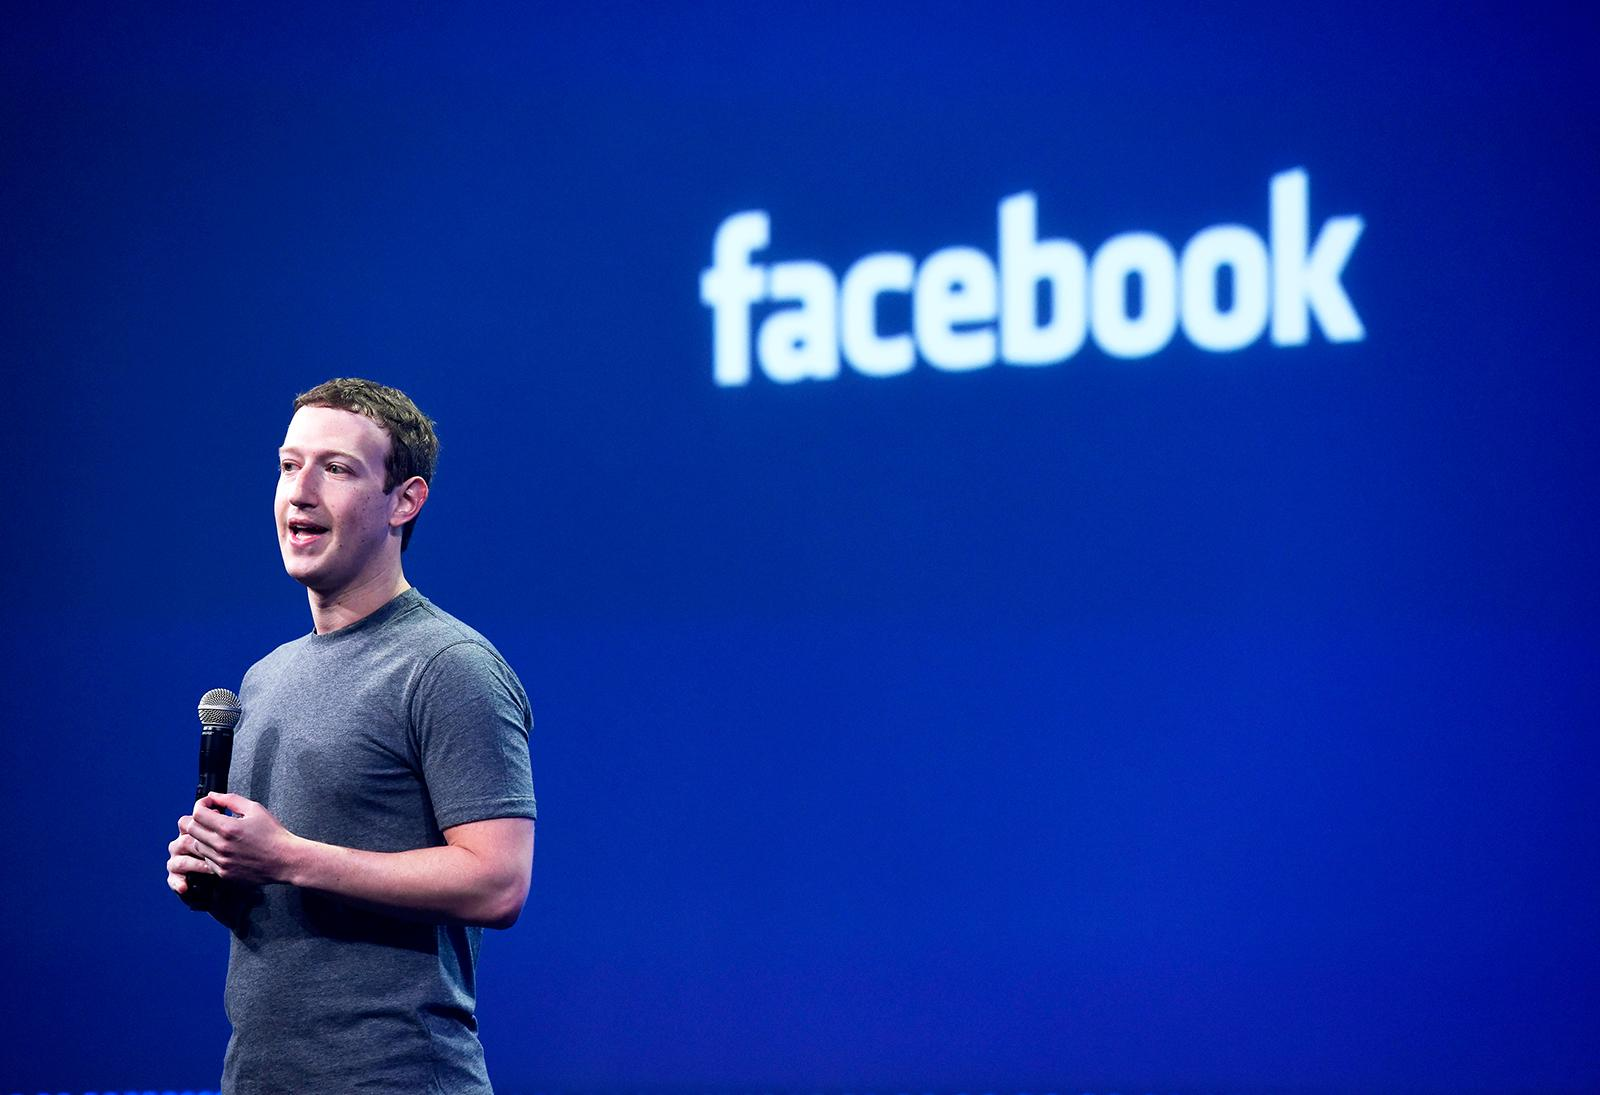 Can Facebook become Brainbook? Mark Zuckerberg's vision explained